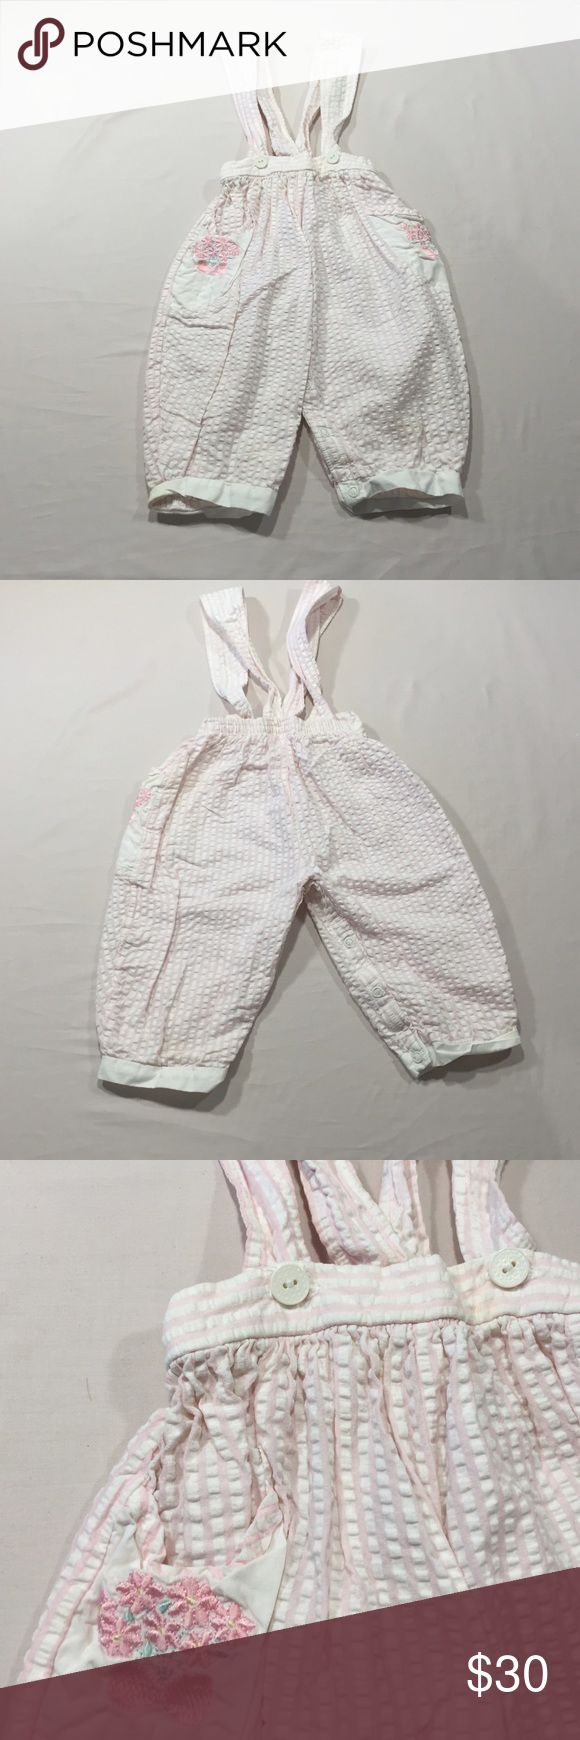 Baby Dior Suspenders Pants Pink & White Size 12 M Excellent pre-loved condition. 100% cotton Size 12 months 19-22 lbs. Dior Bottoms Casual